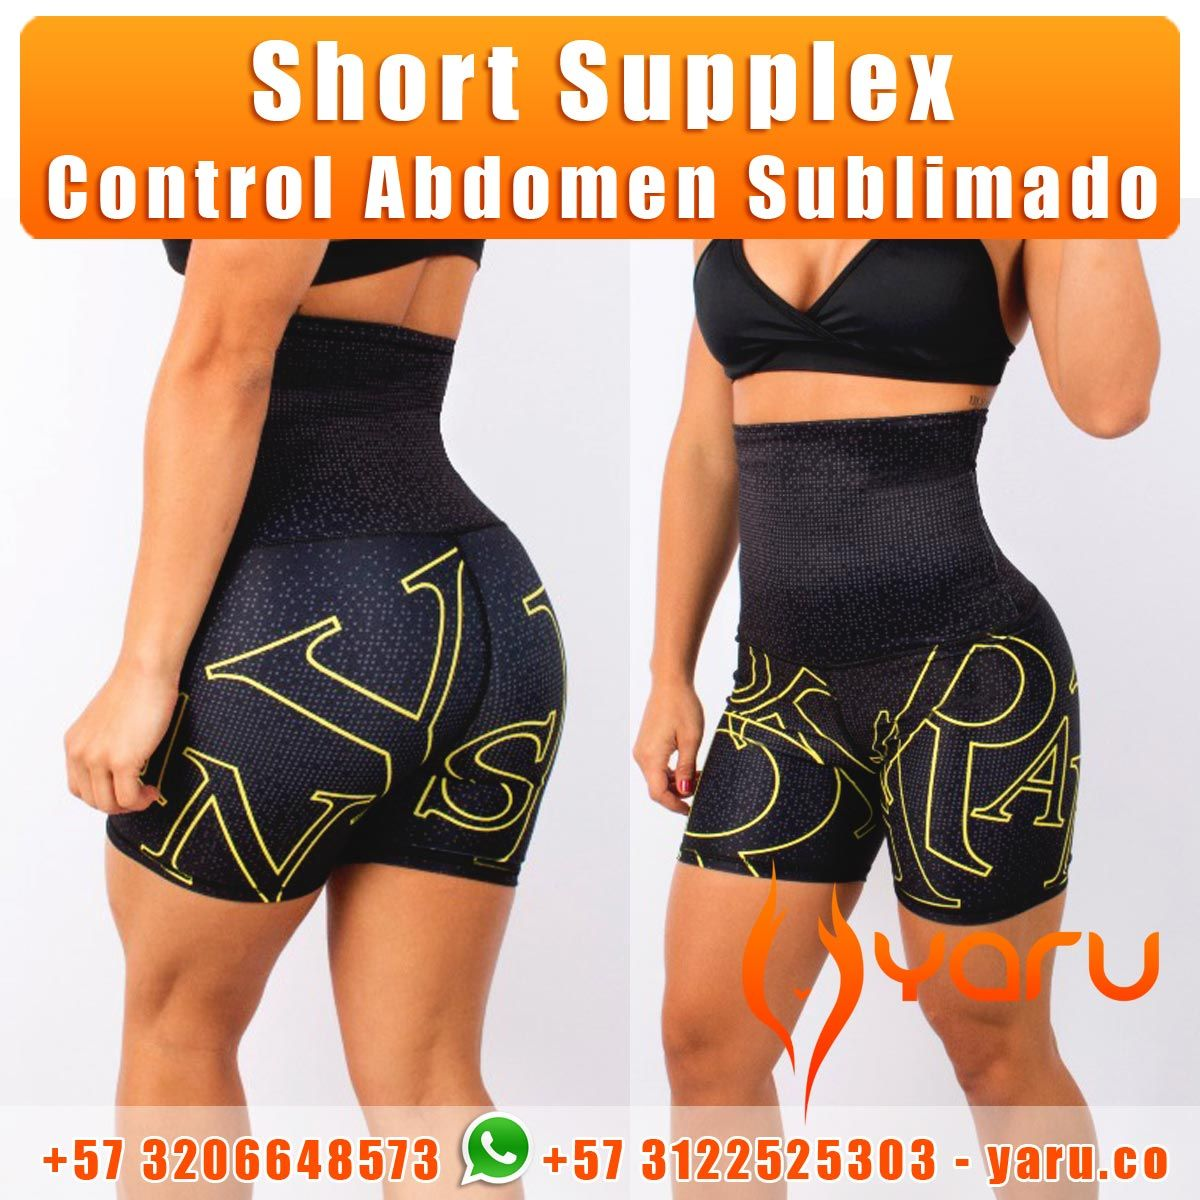 8bb394ad5cacb Short Supplex Sublimado Control Abdomen